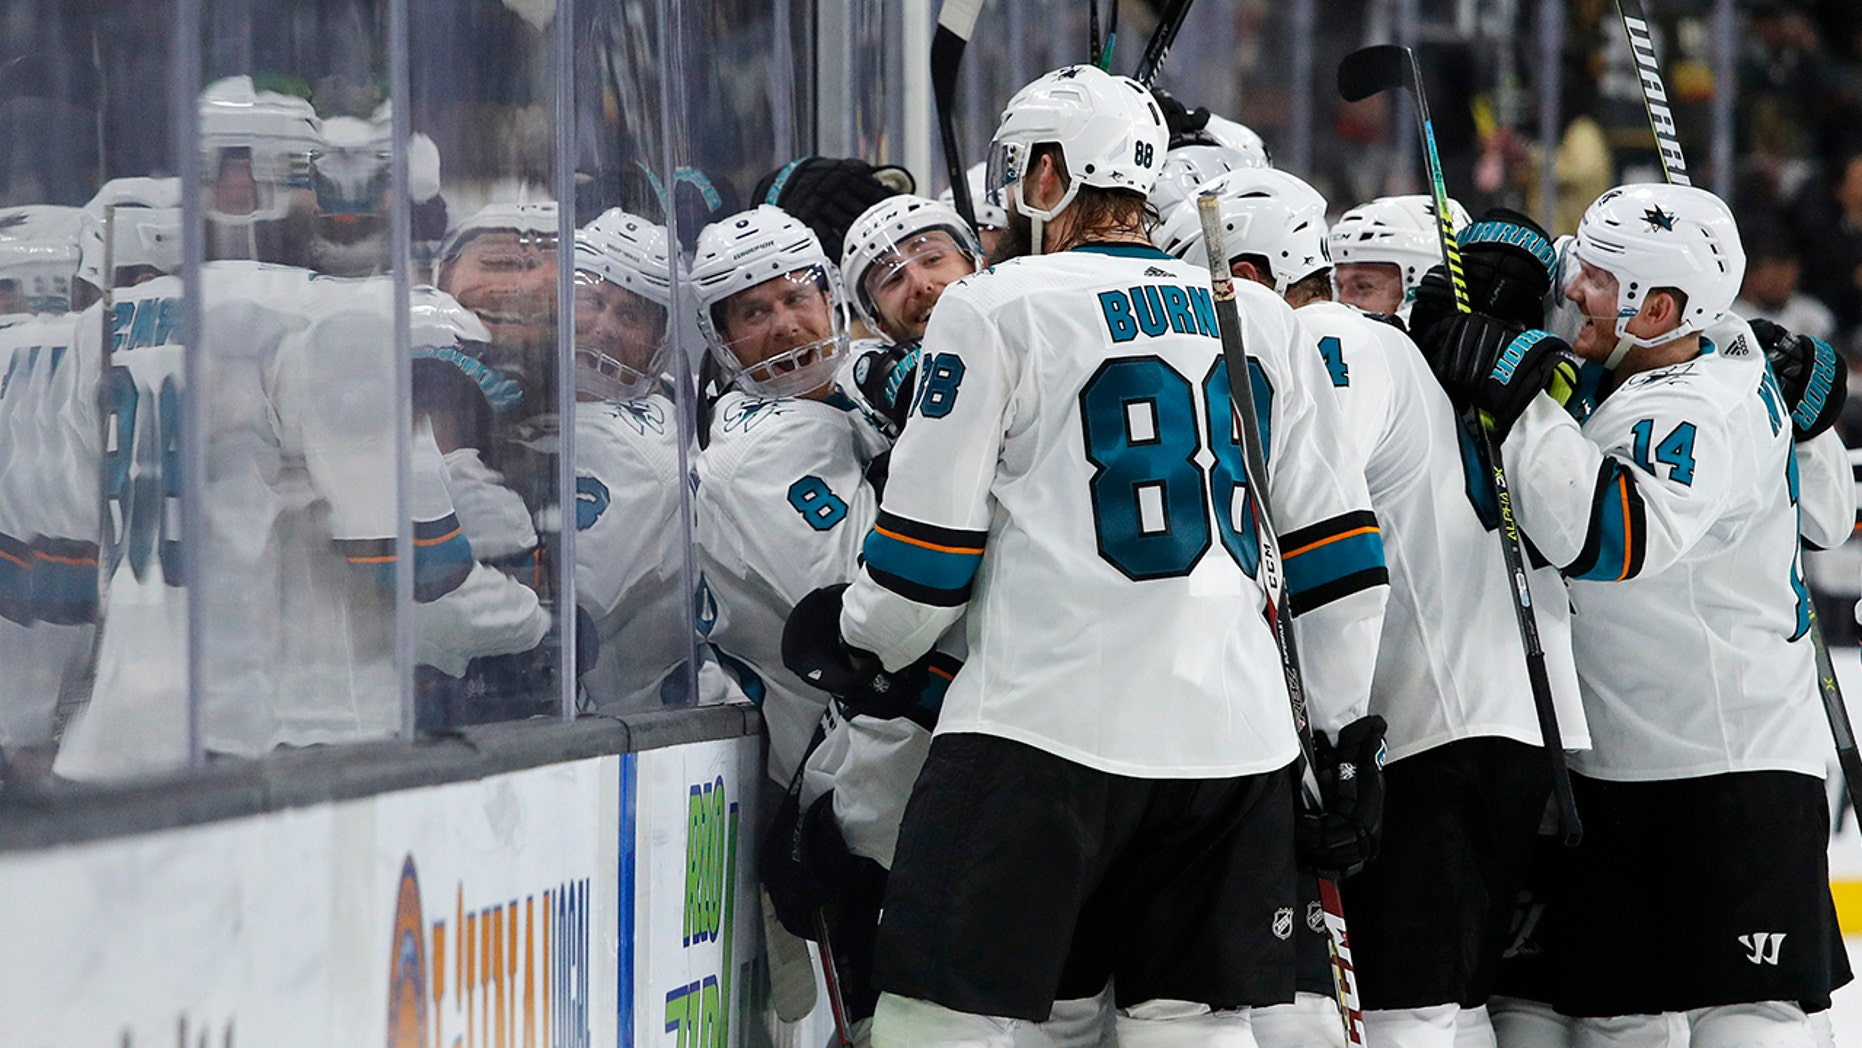 huge selection of 32e4f 9428a Hertl lifts Sharks past Vegas 2-1 in 20T to force Game 7 ...